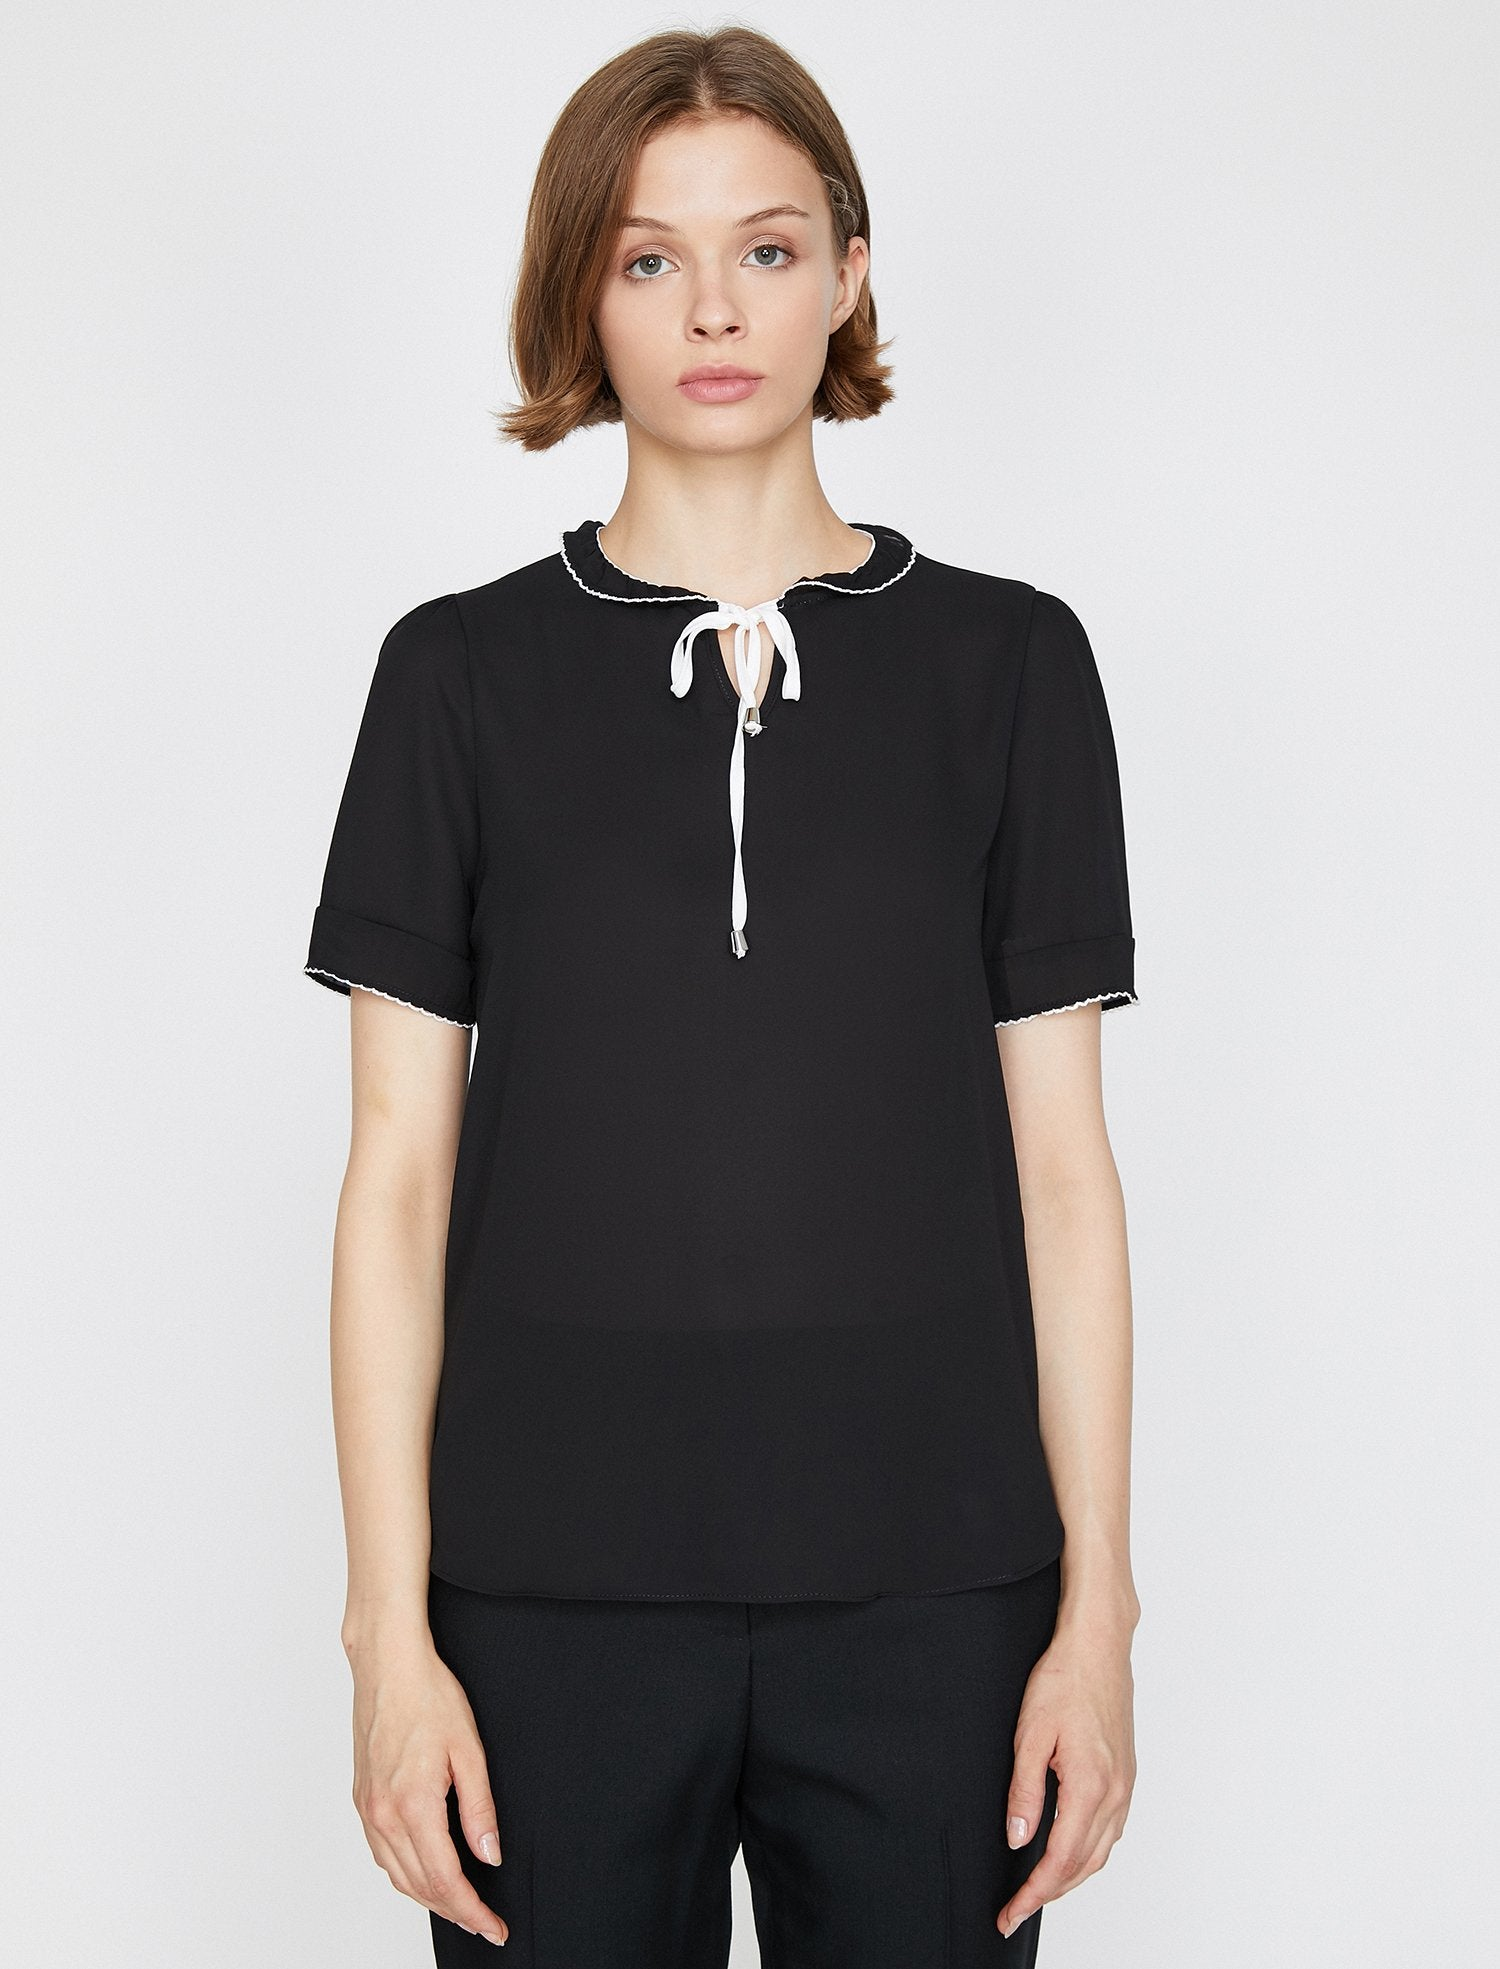 Contrast Stitching Blouse in Black